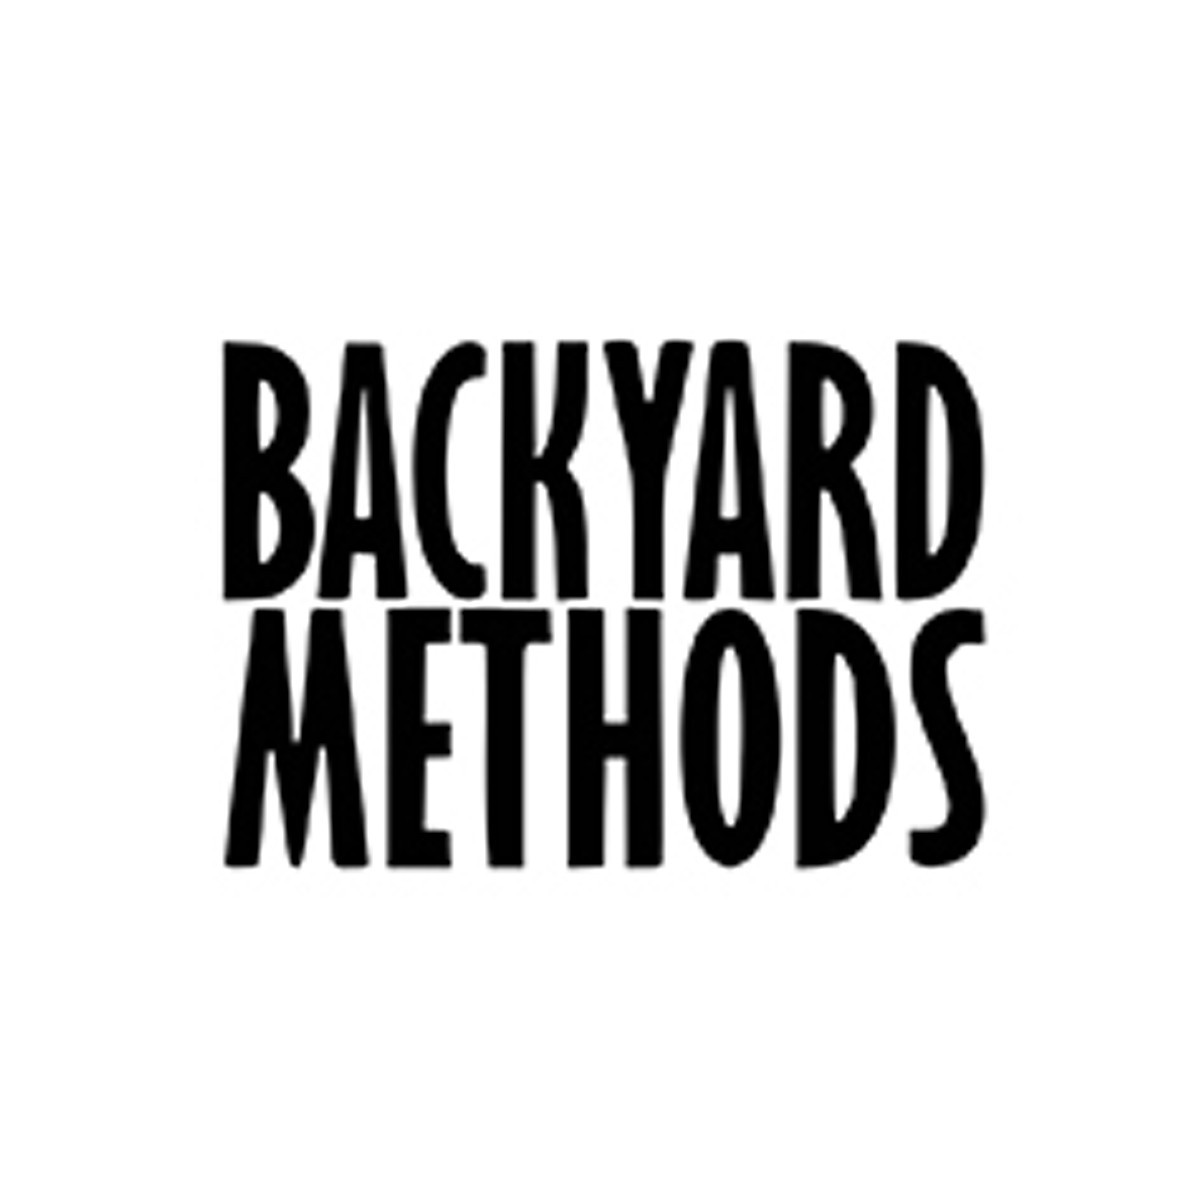 Backyard Methods